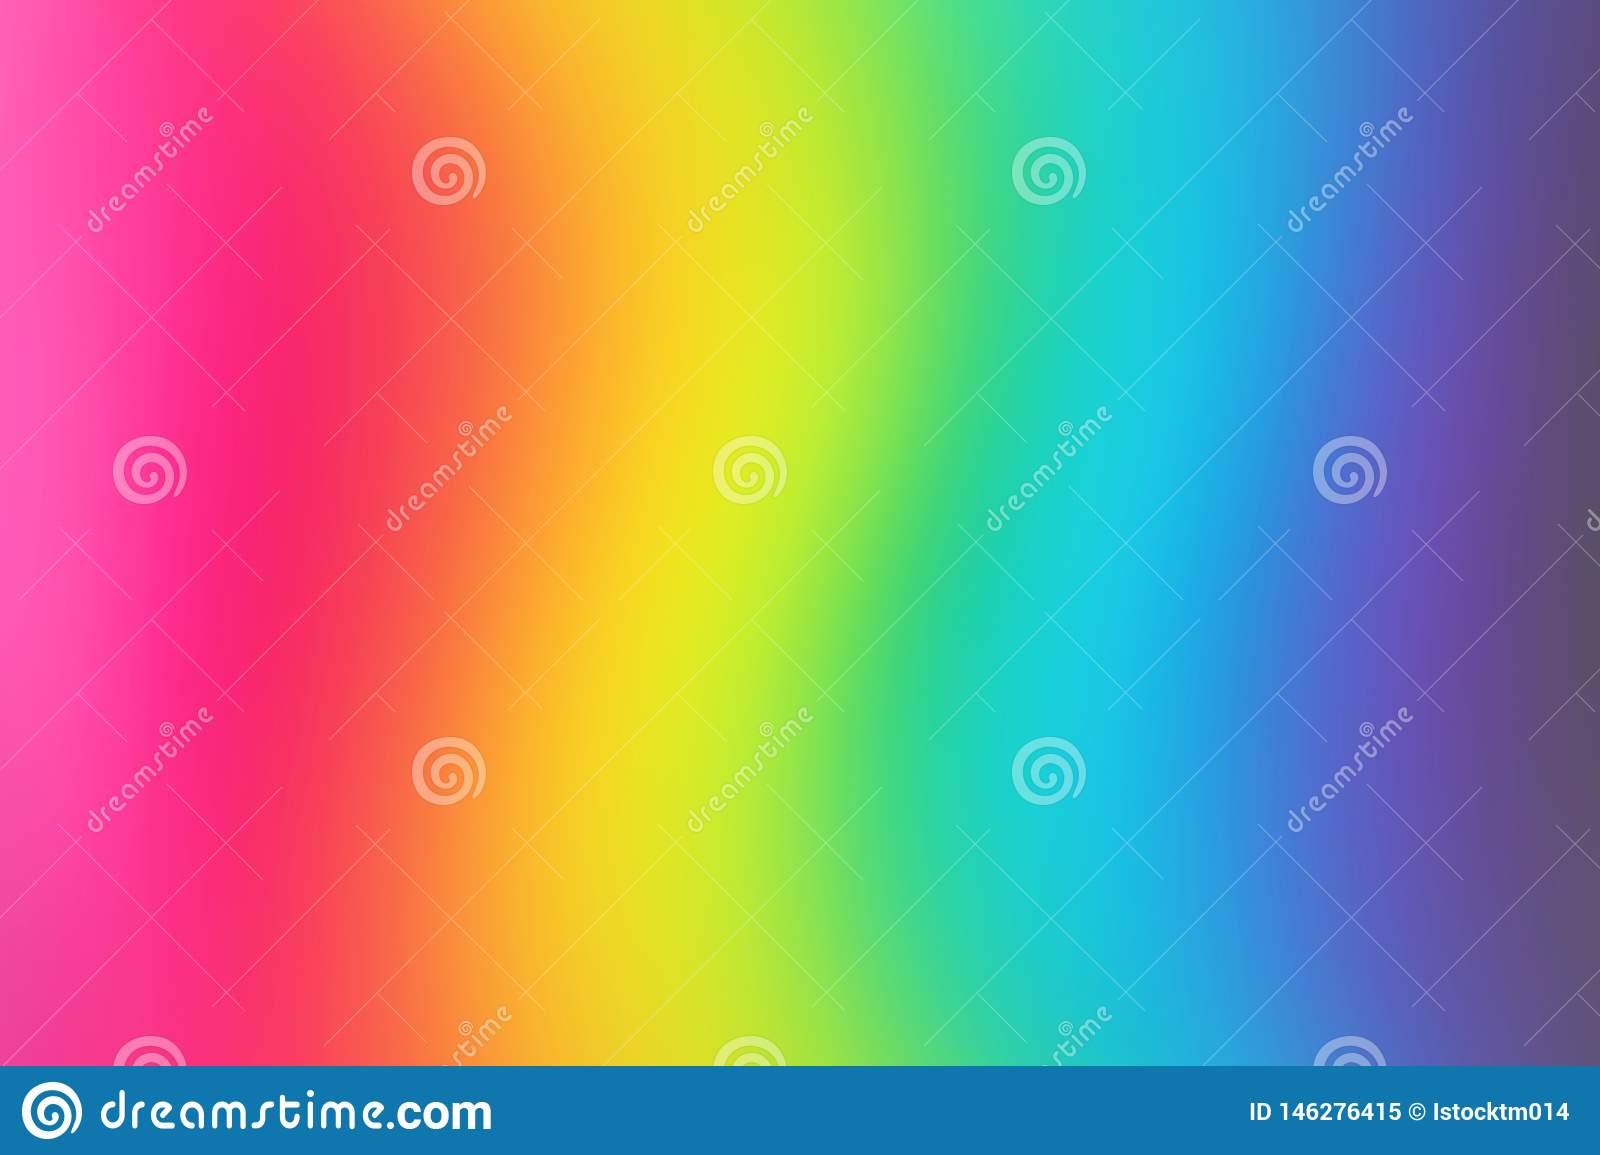 Abstract Blurred Rainbow Background Colorful Wallpaper